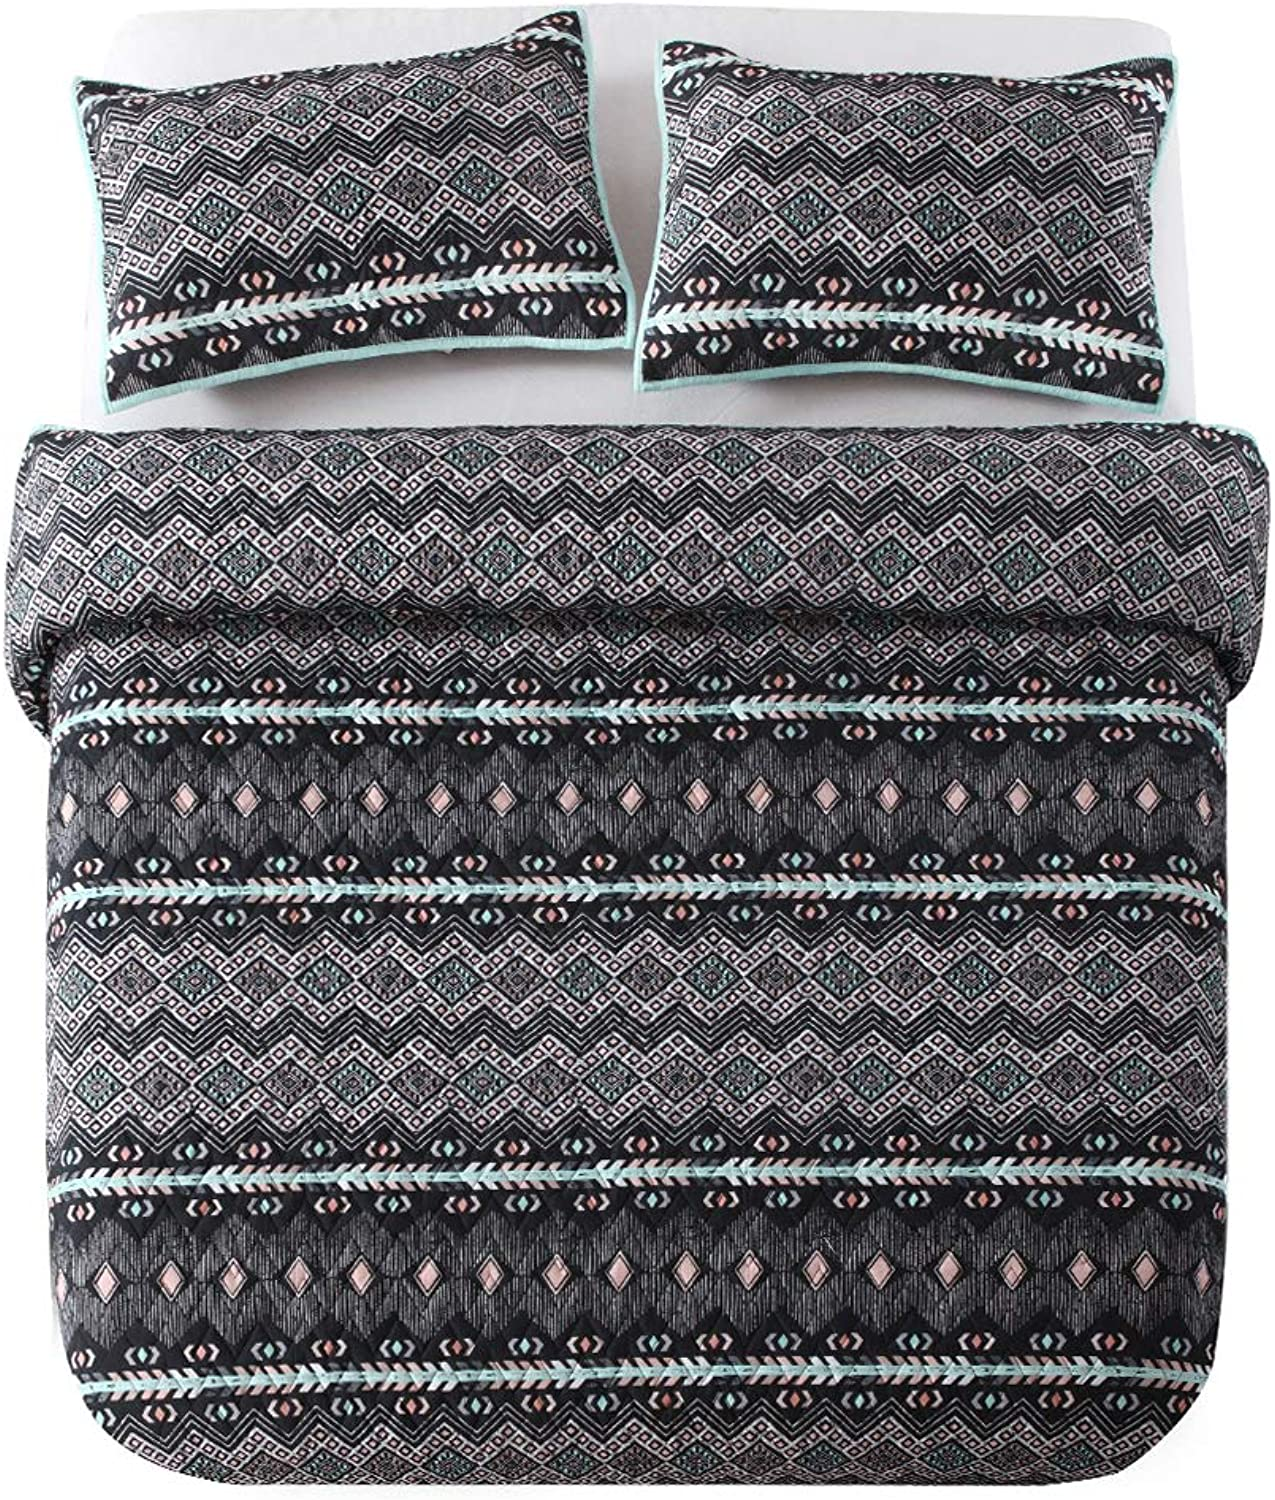 NEWLAKE Reversible Quilt Bedspread Coverlet Set,Classic Ethnic Style, Queen Size